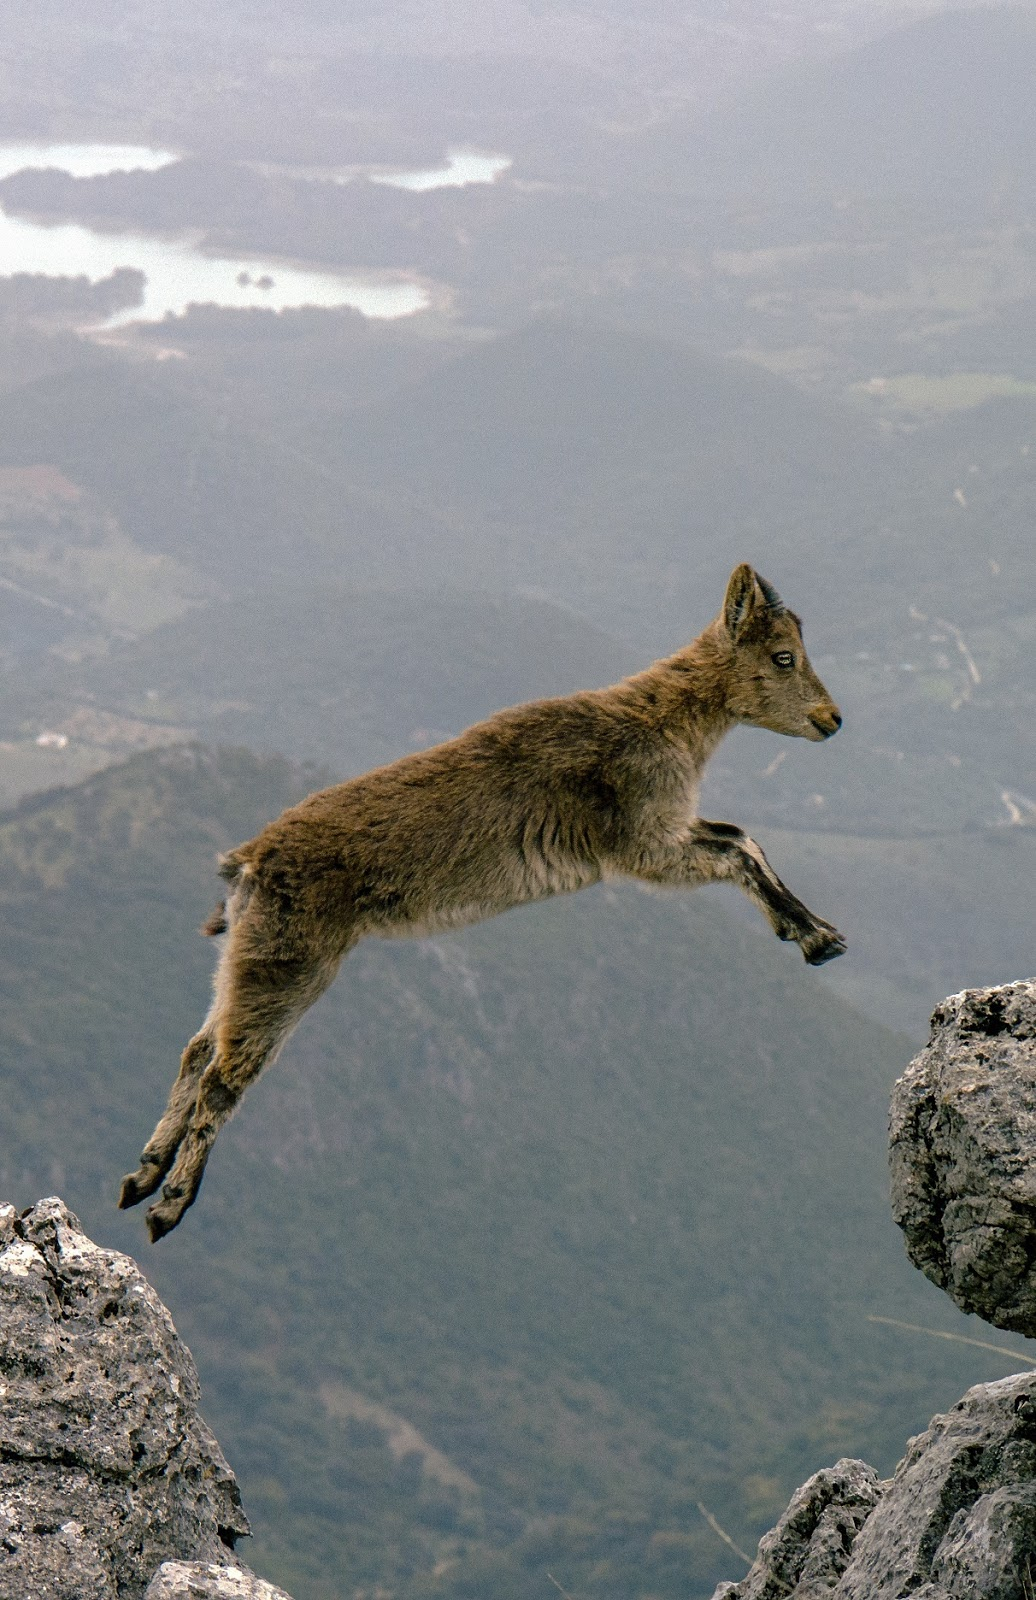 An amazing photo capturing the moment a mountain goat jumps off a ridge.